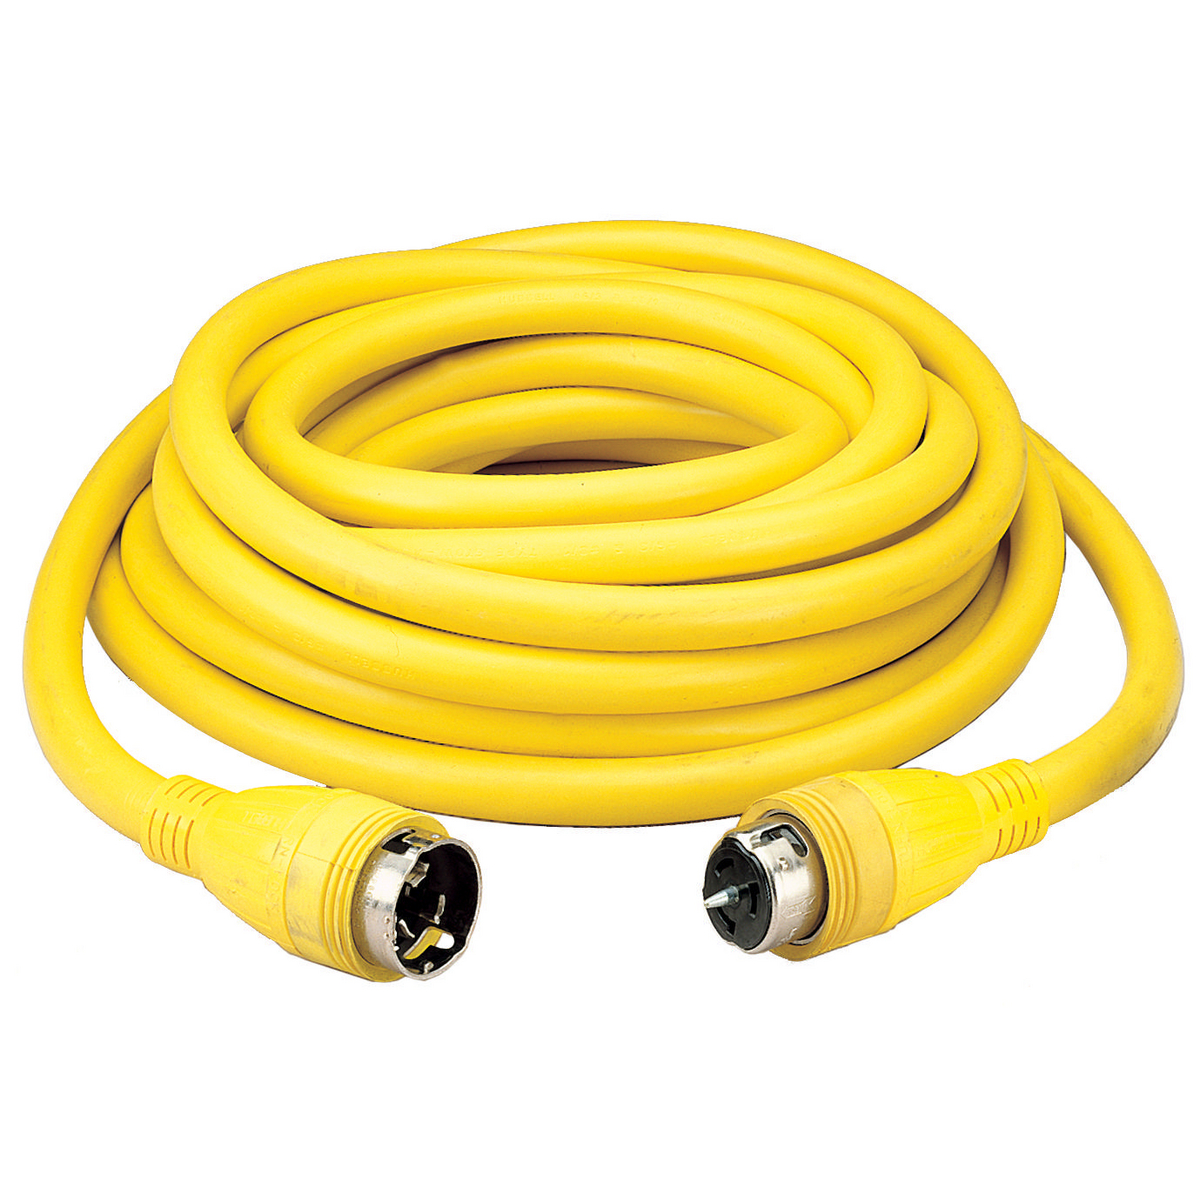 Hubbell SCC06 Cable Set